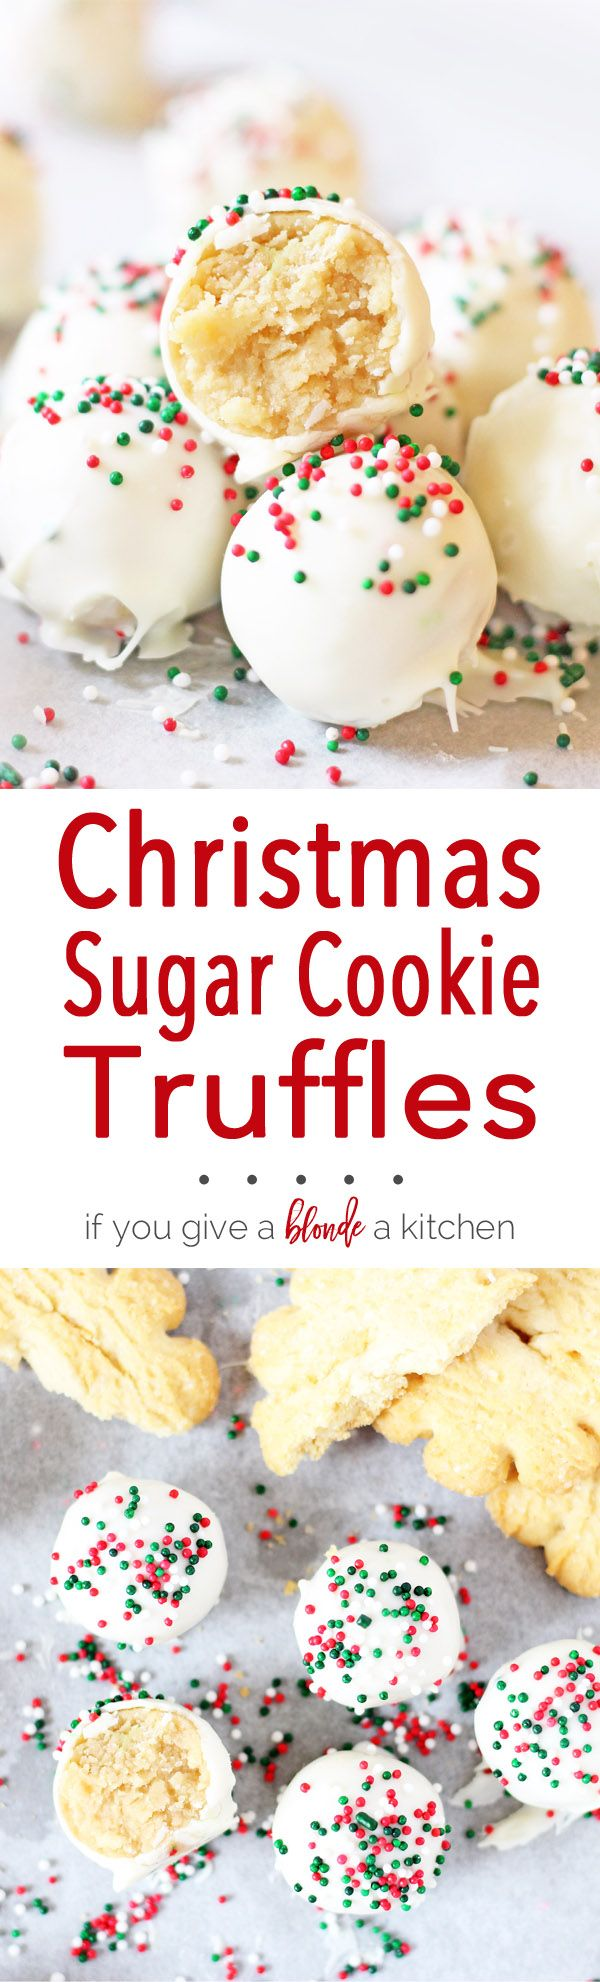 Sugar cookie truffles are a must-try this Christmas. It's a no-bake recipe that uses sugar cookies, cream cheese, white chocolate and sprinkles! | www.ifyougiveablondeakitchen.com (No Bake Chocolate Desserts)